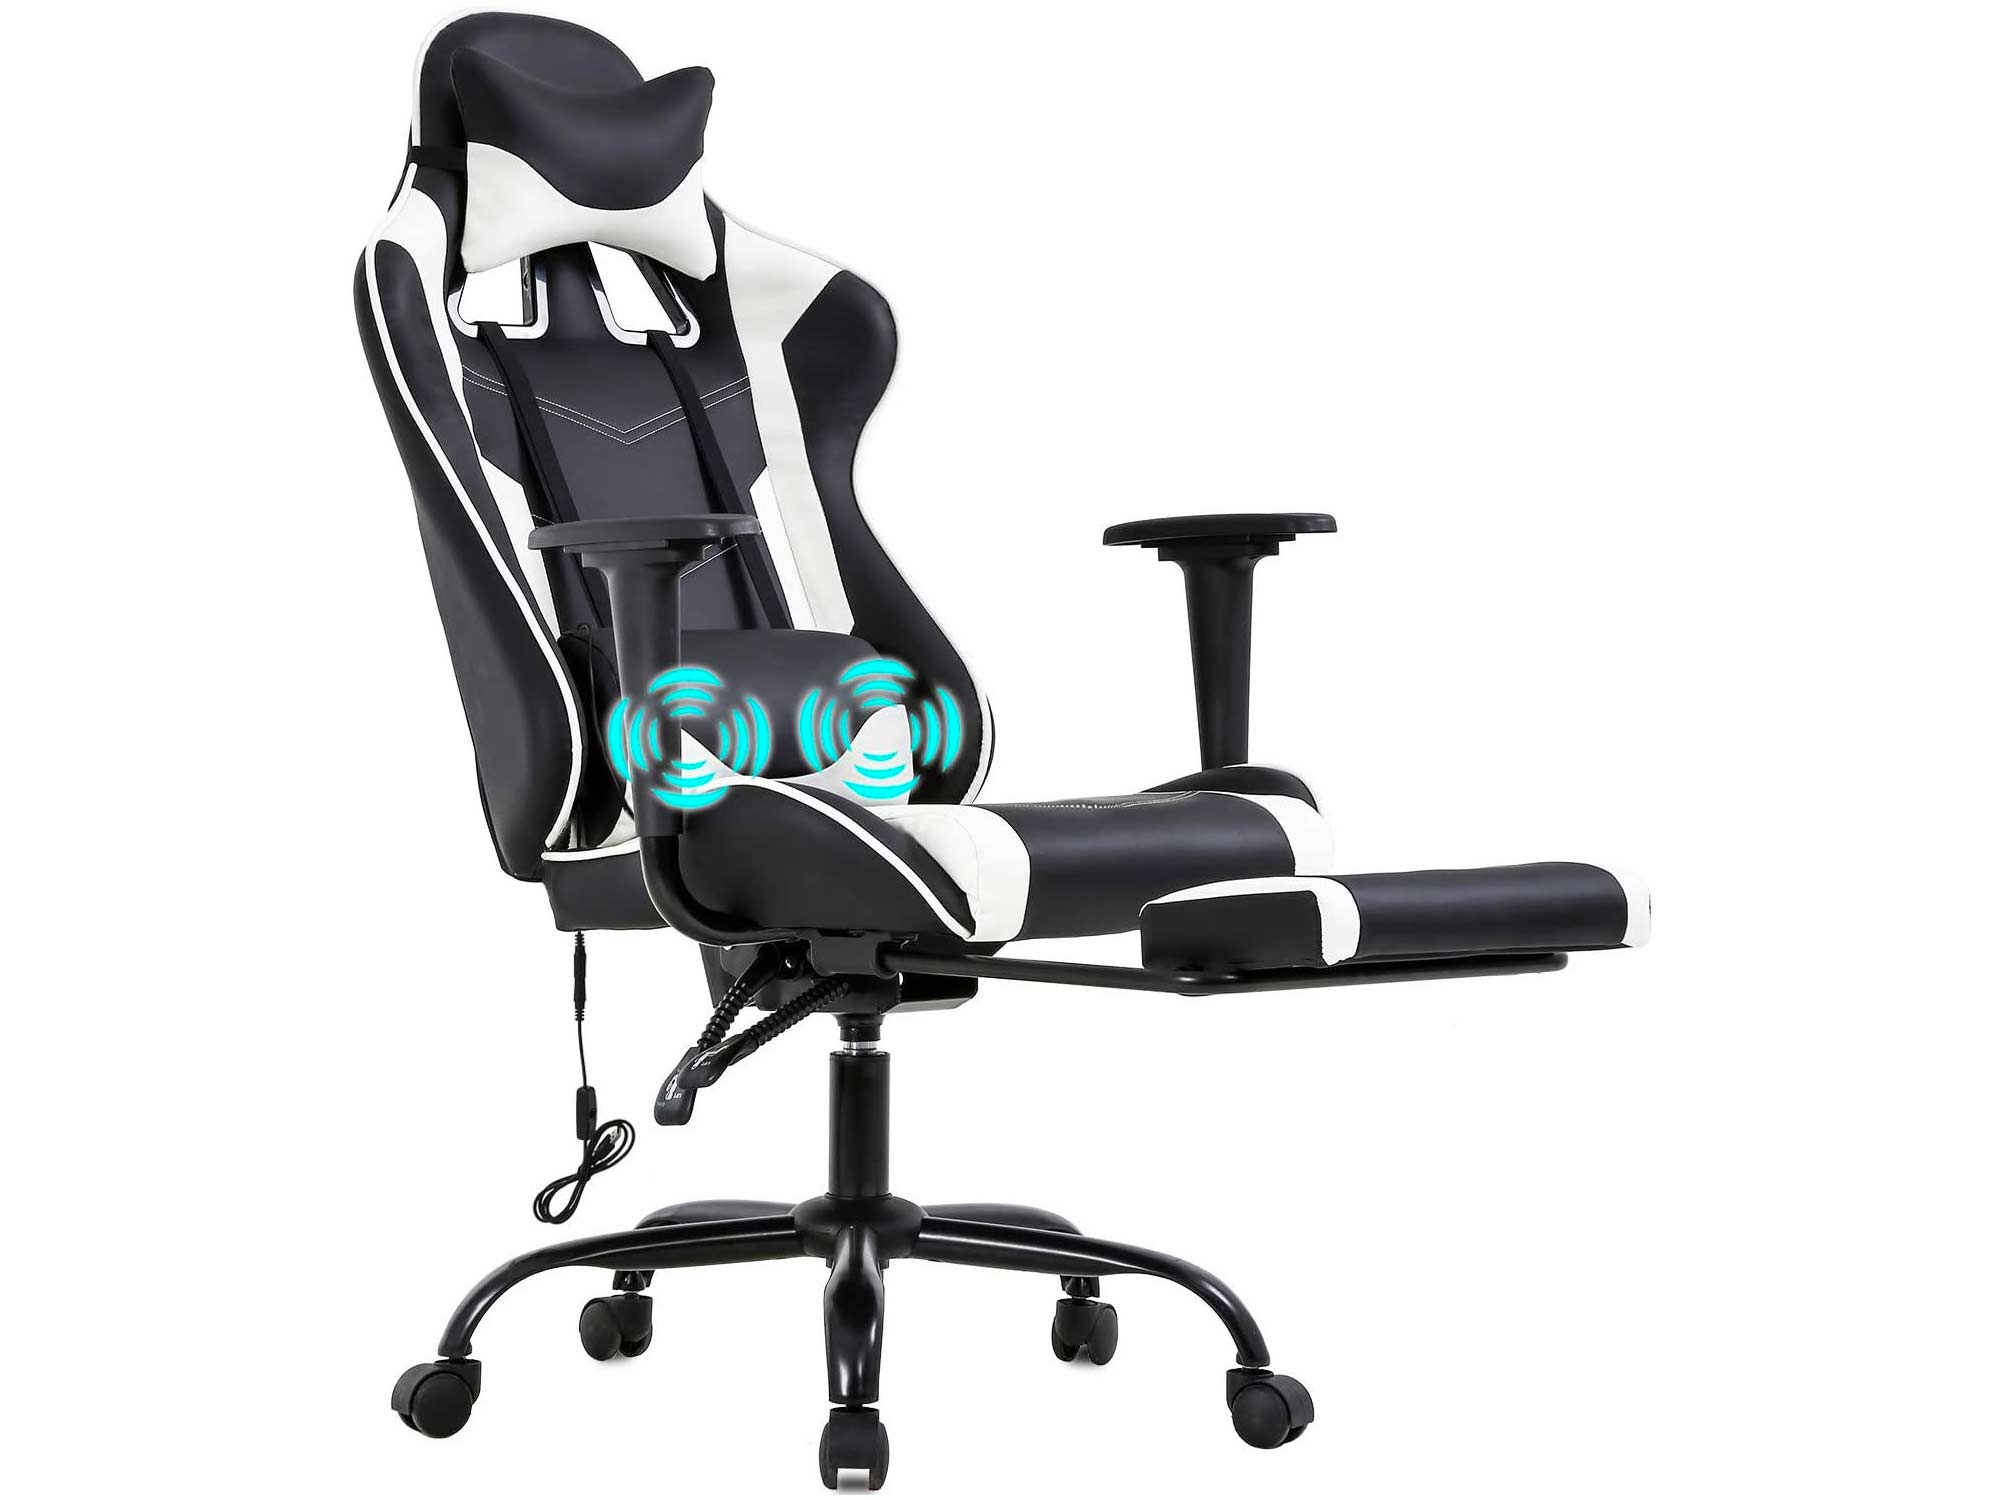 PC Gaming Chair Racing Office Chair Ergonomic Desk Chair Massage PU Leather Recliner Computer Chair with Lumbar Support Headrest Armrest Footrest Rolling Swivel Task Chair for Adults